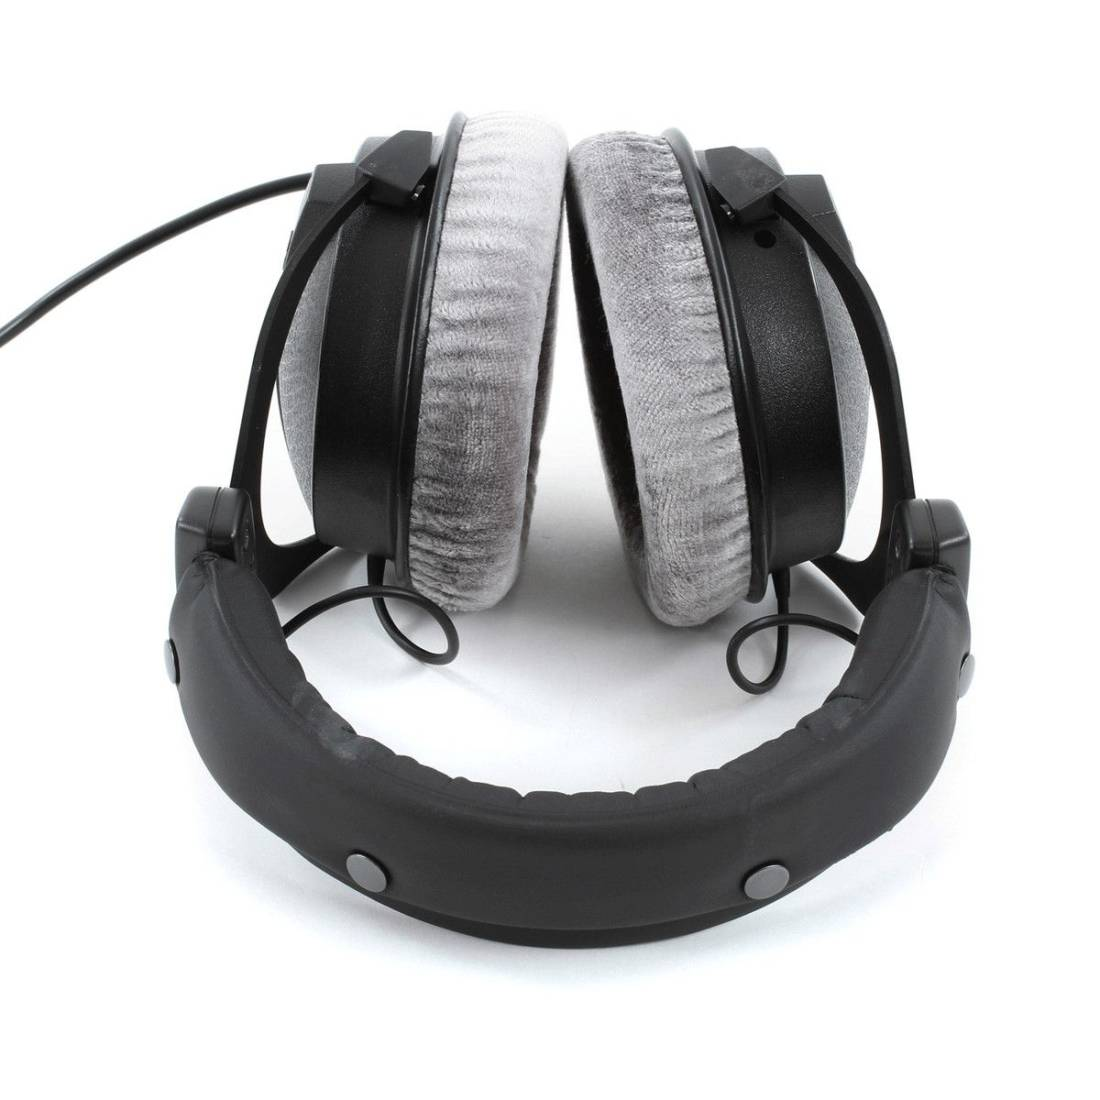 5745a721e23 Beyerdynamic DT 770 Pro Closed Headphones - Long & McQuade Musical ...